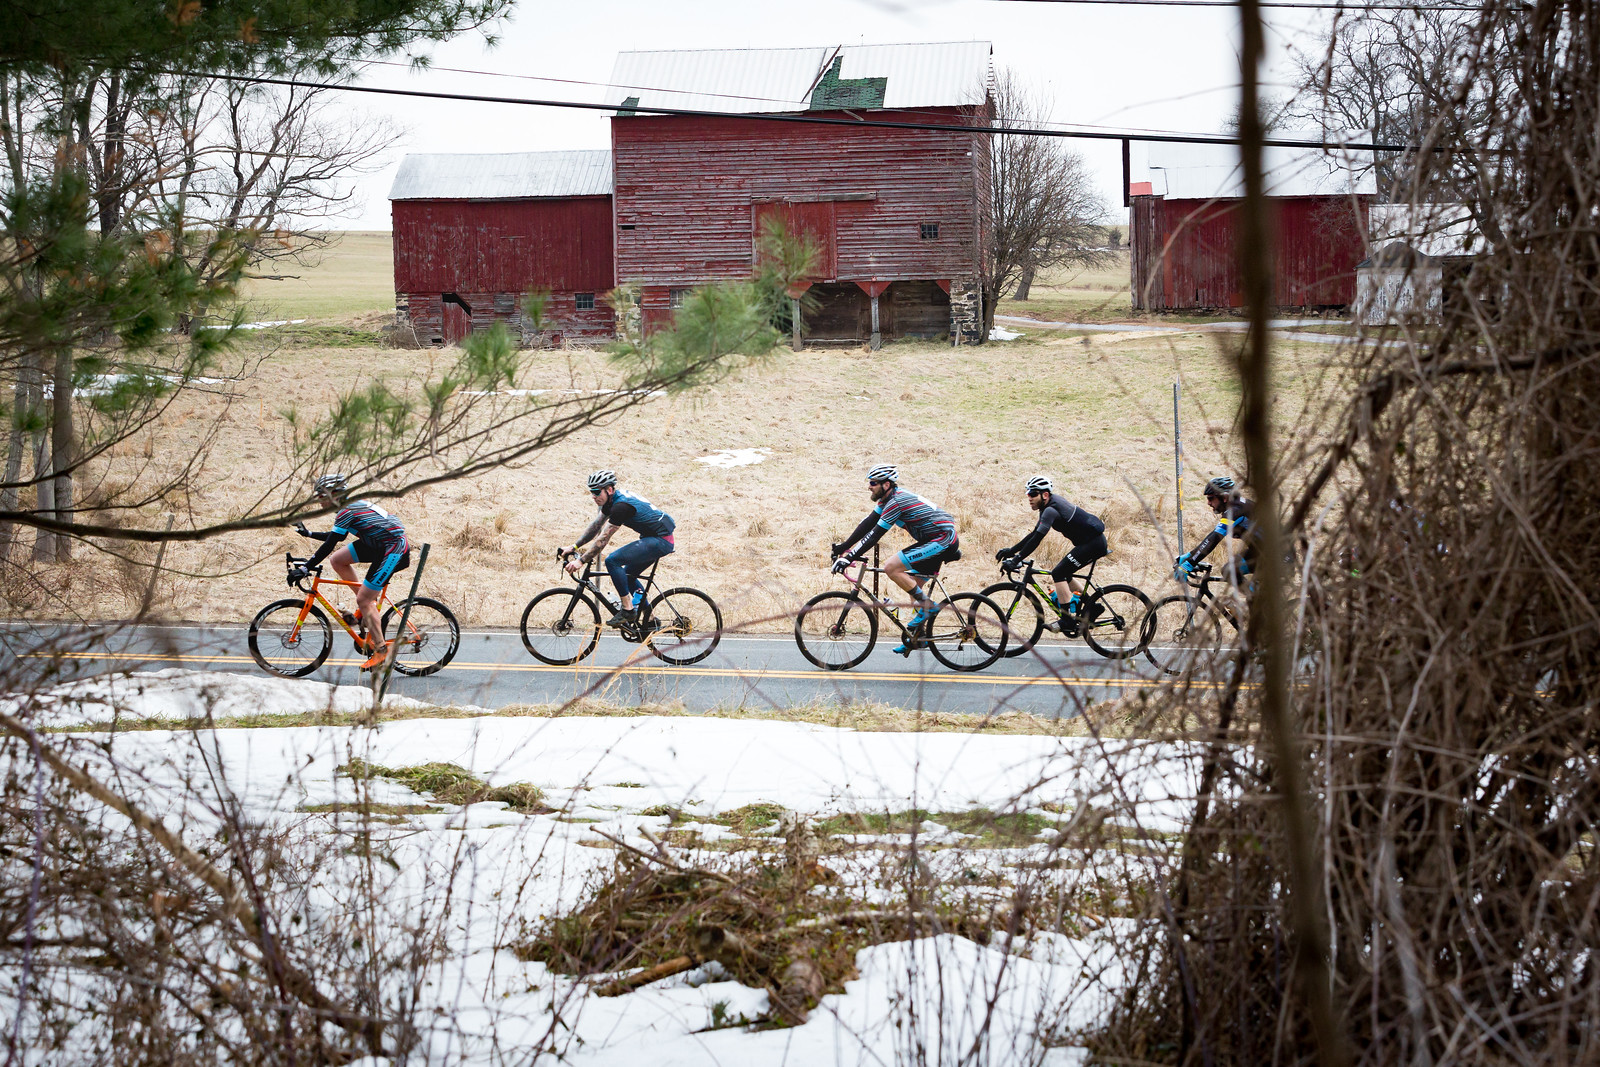 Groups would come together and disperse regularly over the first half of the 2017 Hell of Hunterdon. Photo courtesy Mike Maney.